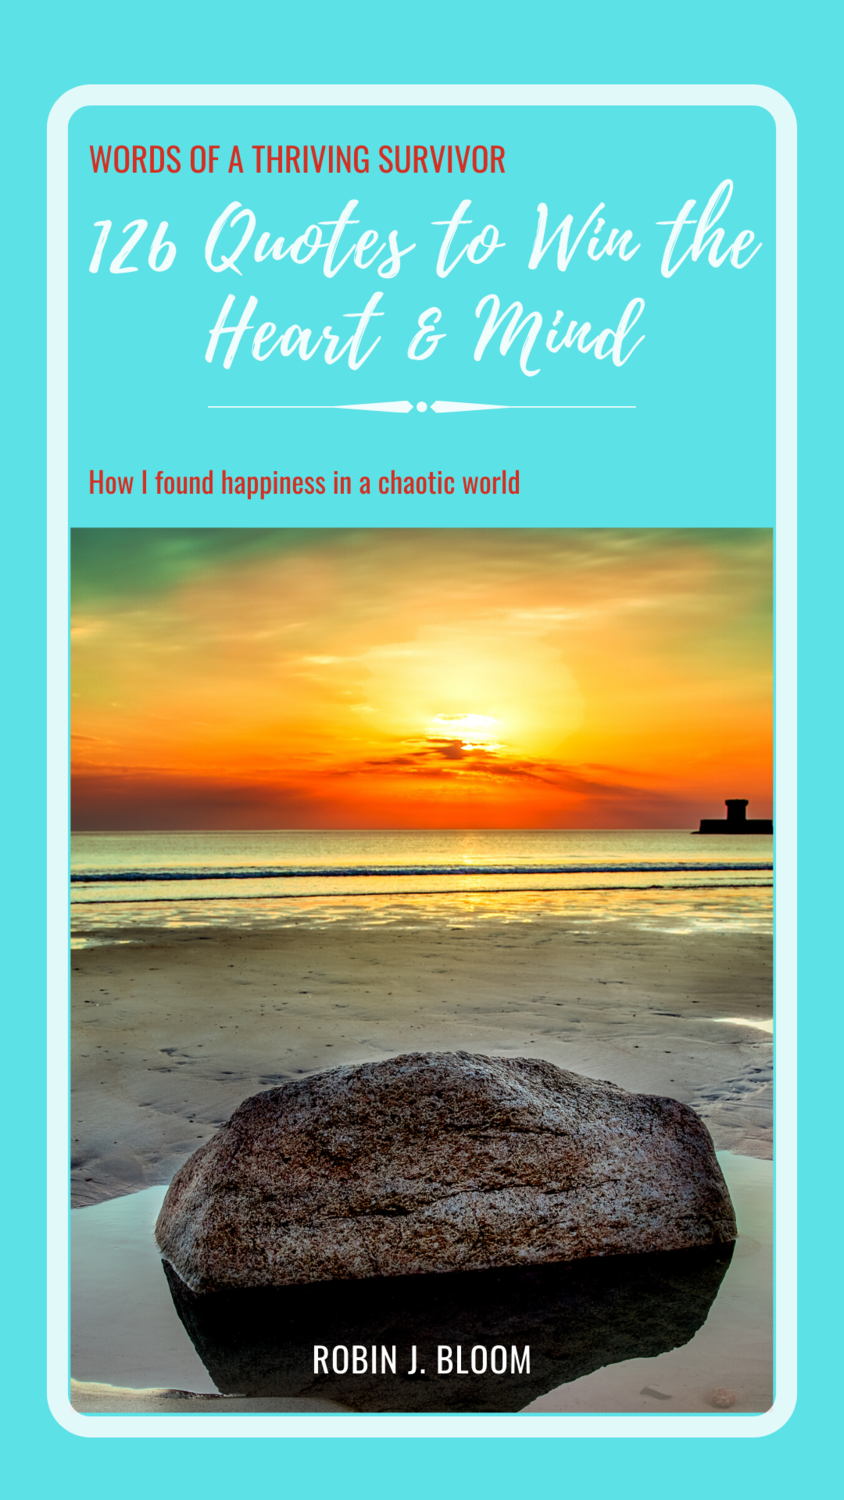 """""""126 Quotes to Win the Heart & Mind.""""  Standard PDF E-book, MOBILE VERSION"""